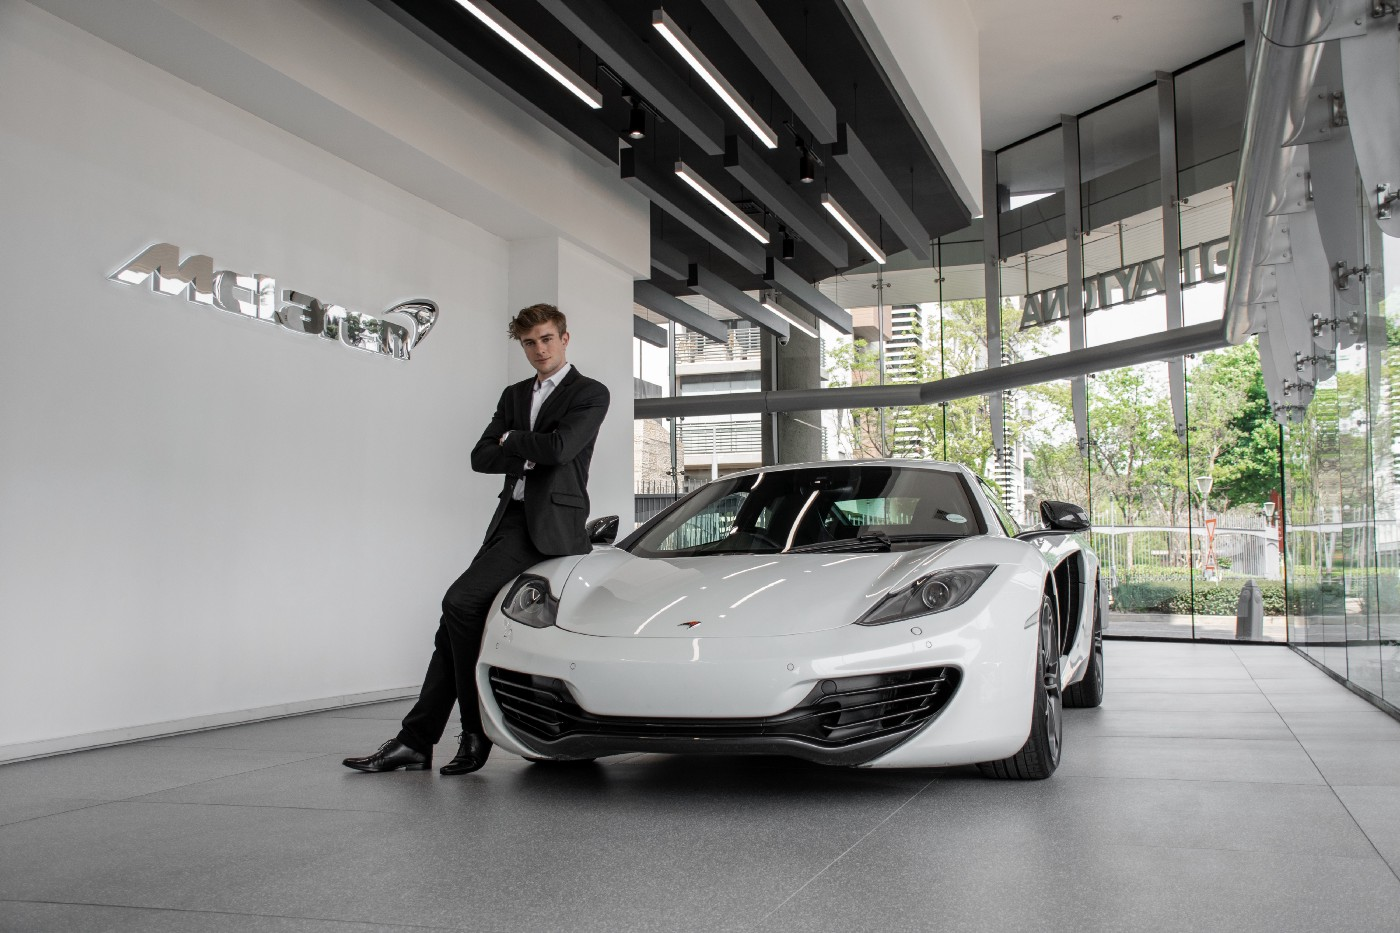 A man in a suit with a white McLaren sports car. He is young and has dark blonde hair. His arms are crossed in front of his body and he is leaning on the passenger side of the fancy sports car.